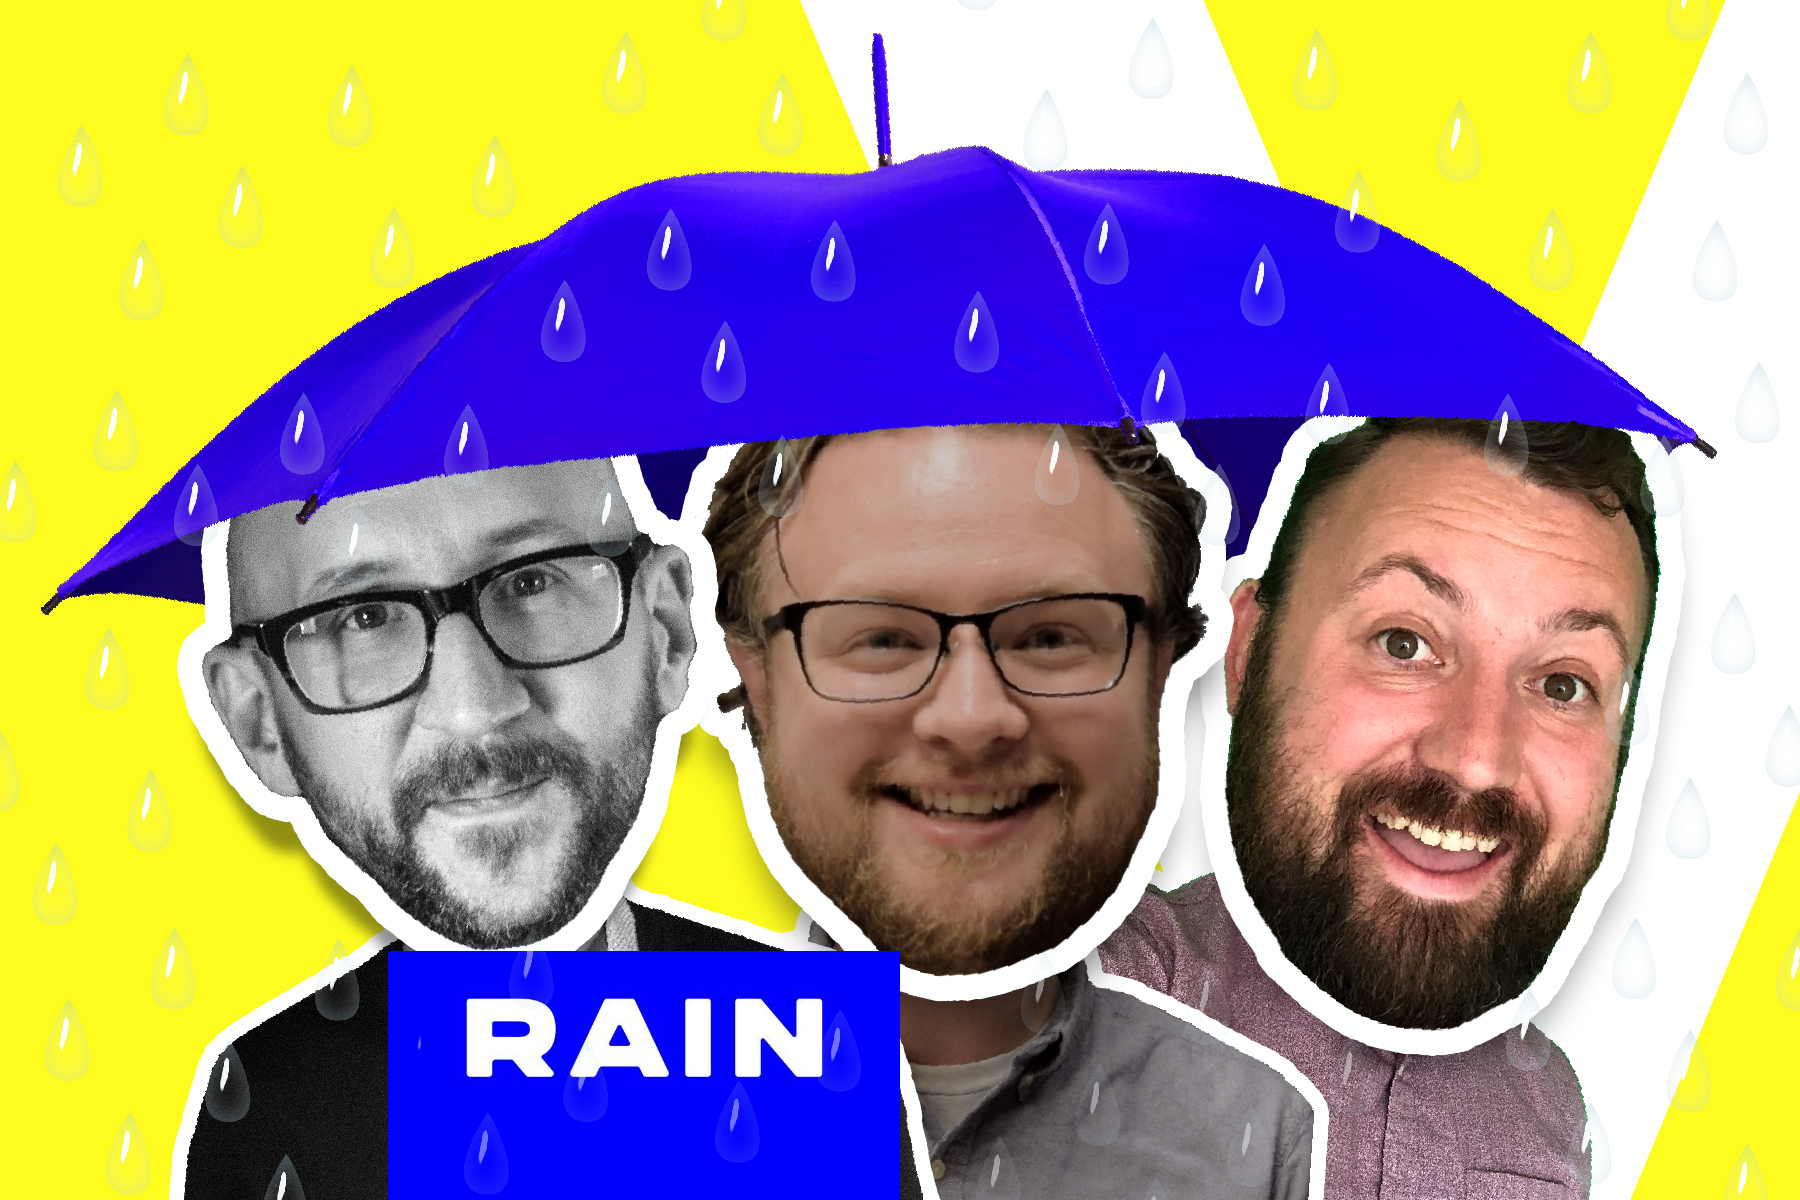 RAIN agency's Will Hall and Jason Herndon with VUX World host, Kane Simms, standing under an umbrella in the rain